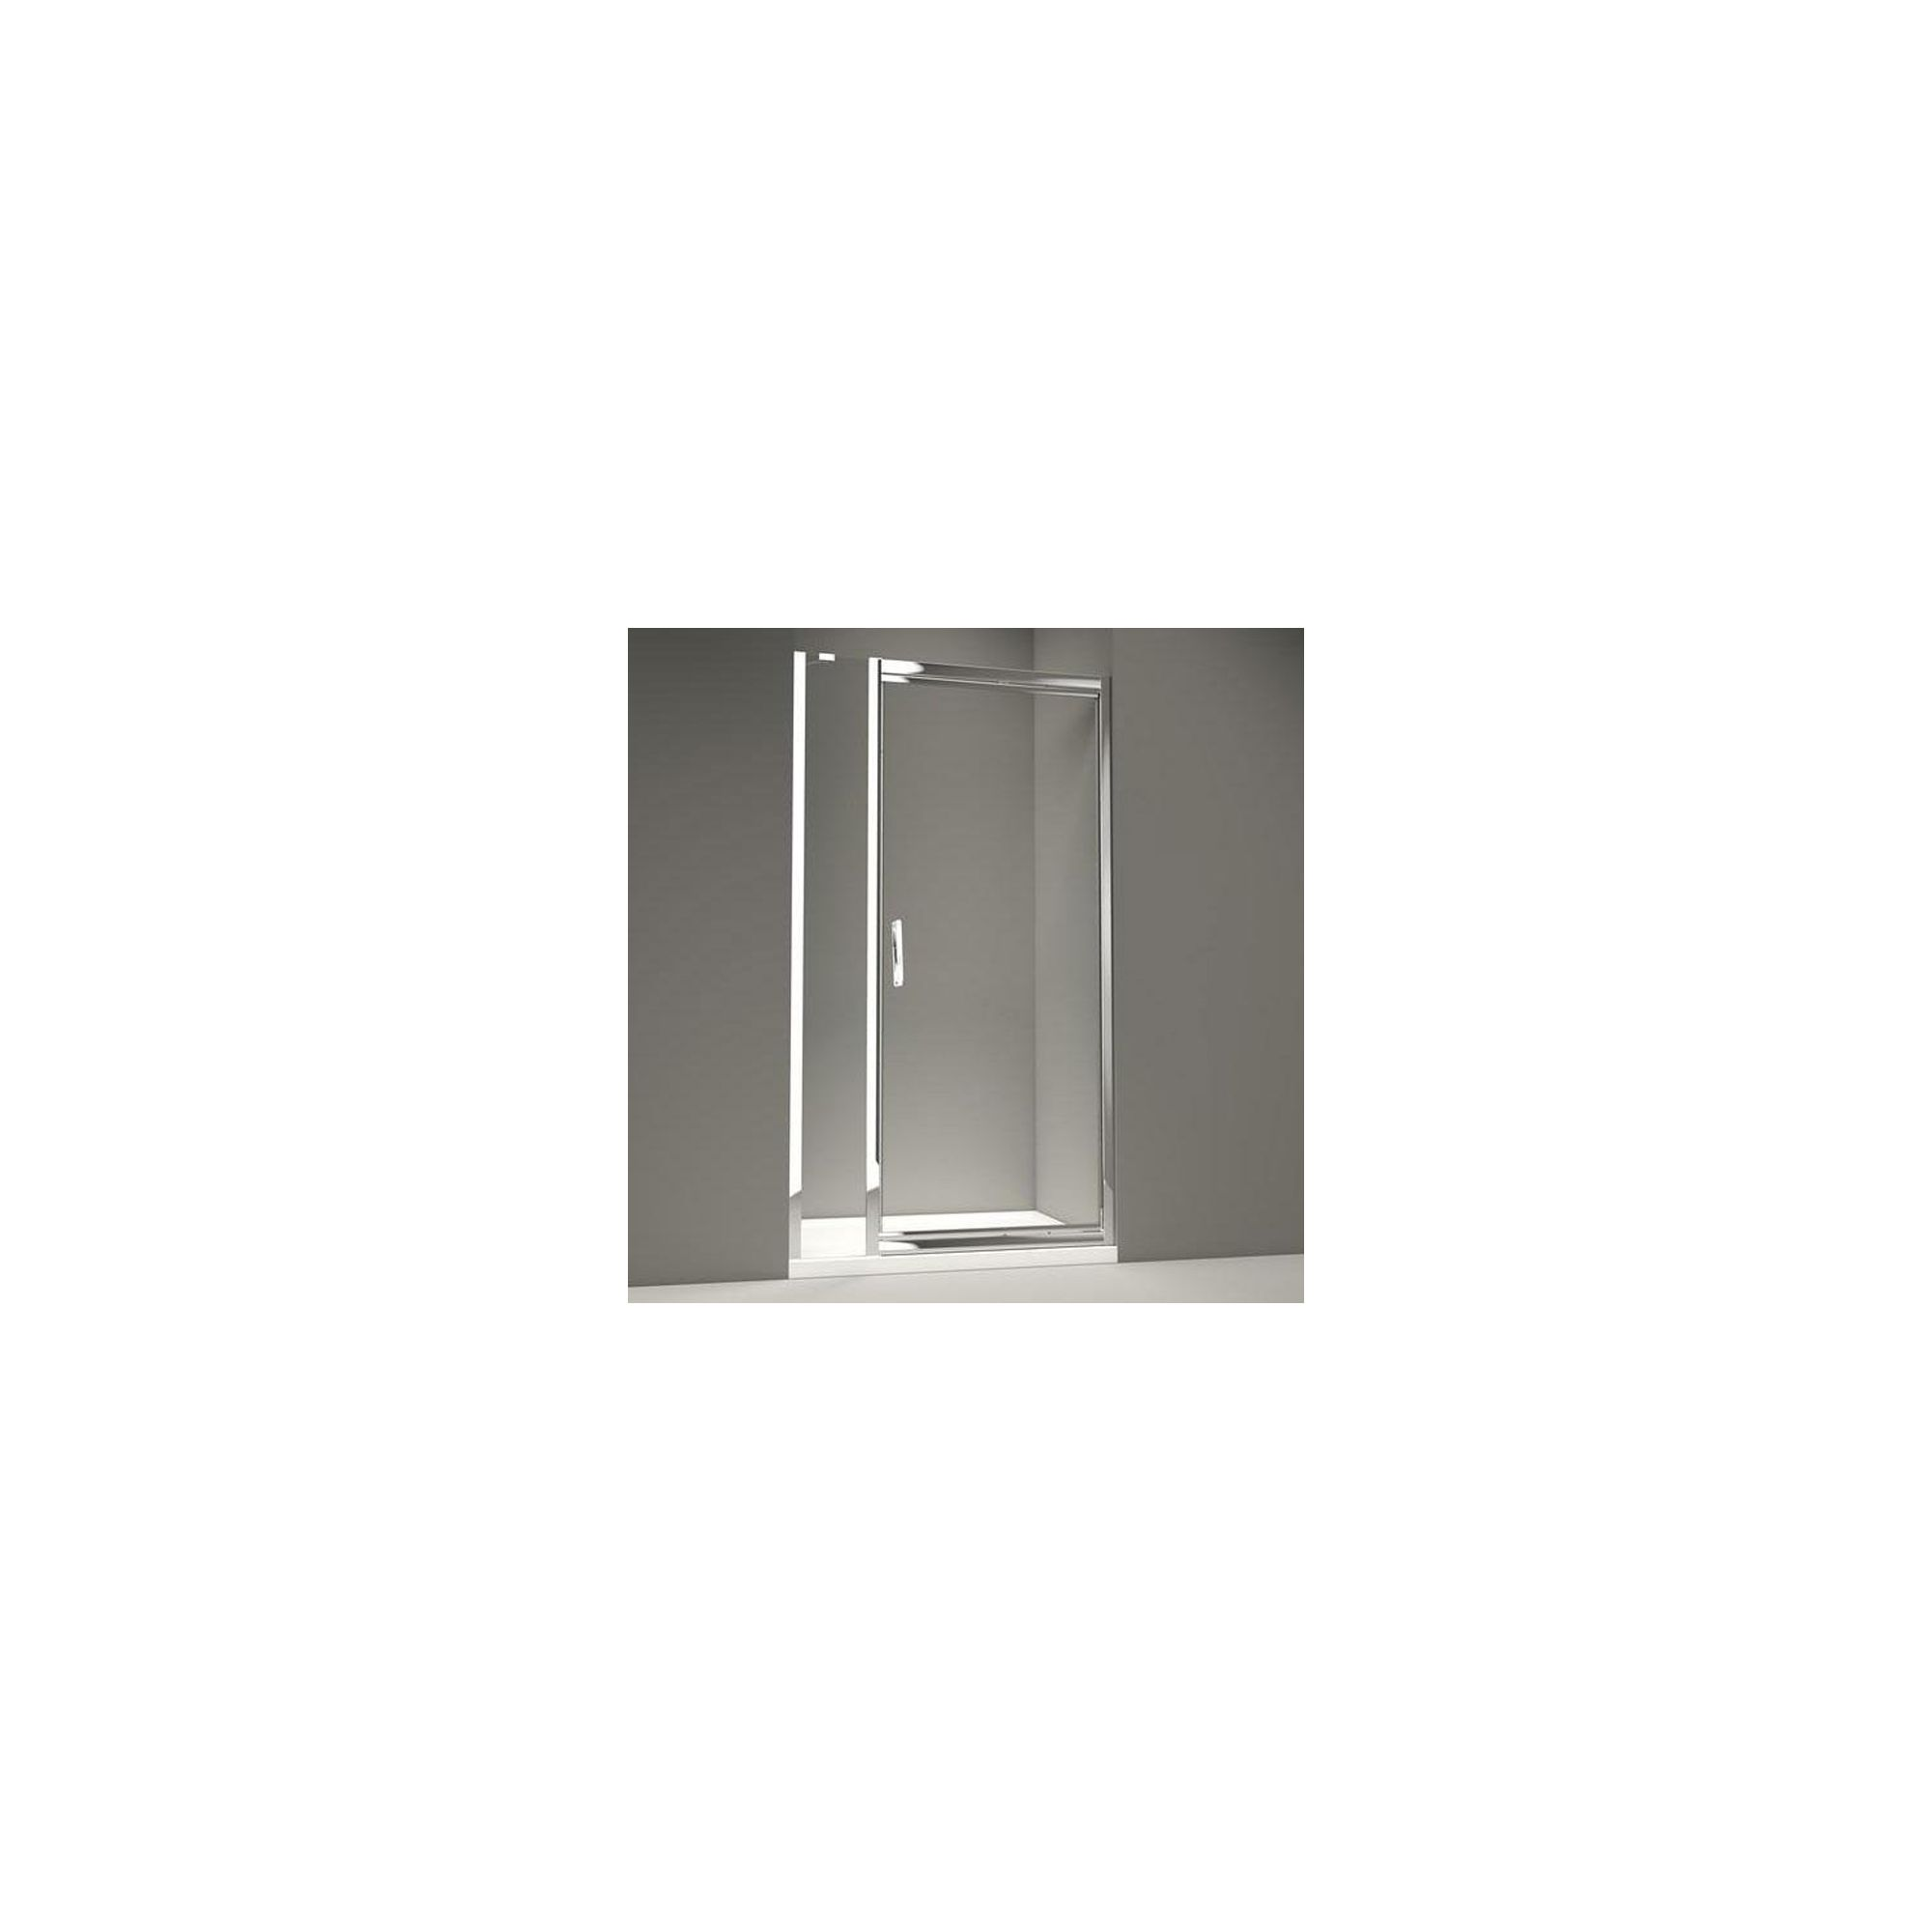 Merlyn Series 8 Inline Infold Shower Door, 1000mm Wide, Chrome Frame, 8mm Glass at Tesco Direct